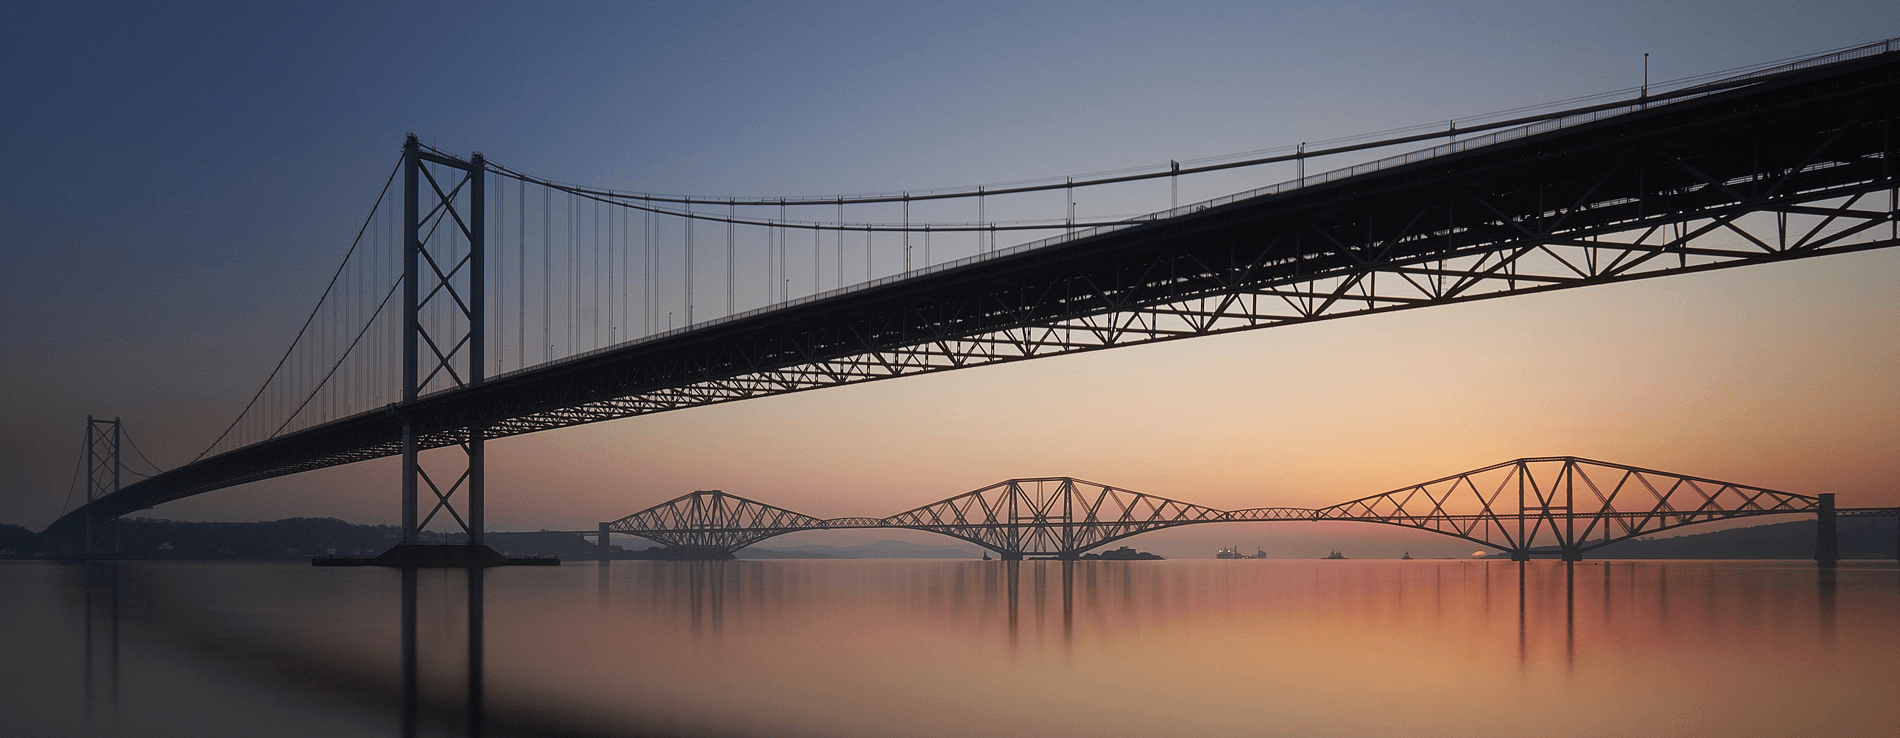 The Forth Bridges – © Steven Hume – stevenhume@gmail.com